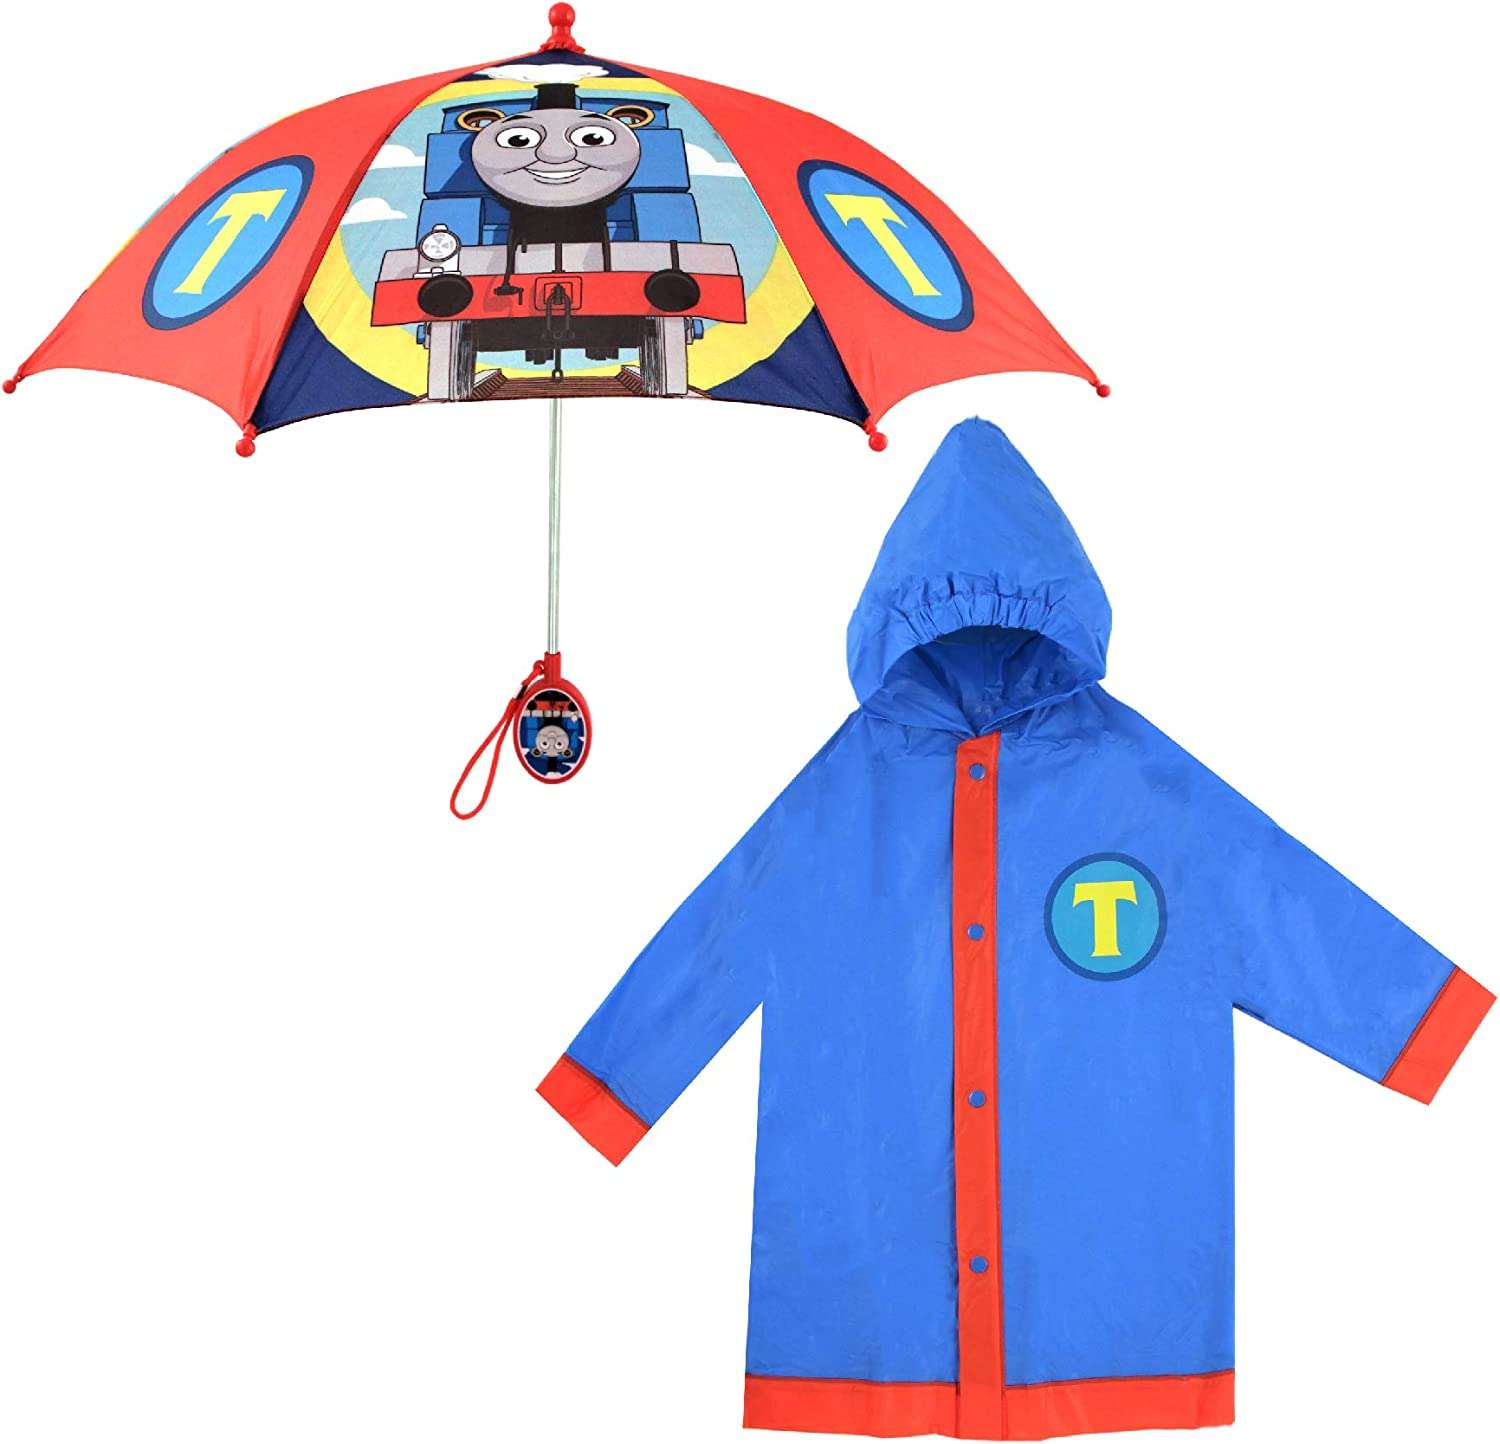 Mattel Kids Umbrella and Slicker, Thomas and Friends Rainwear Set for Boy's Ages...